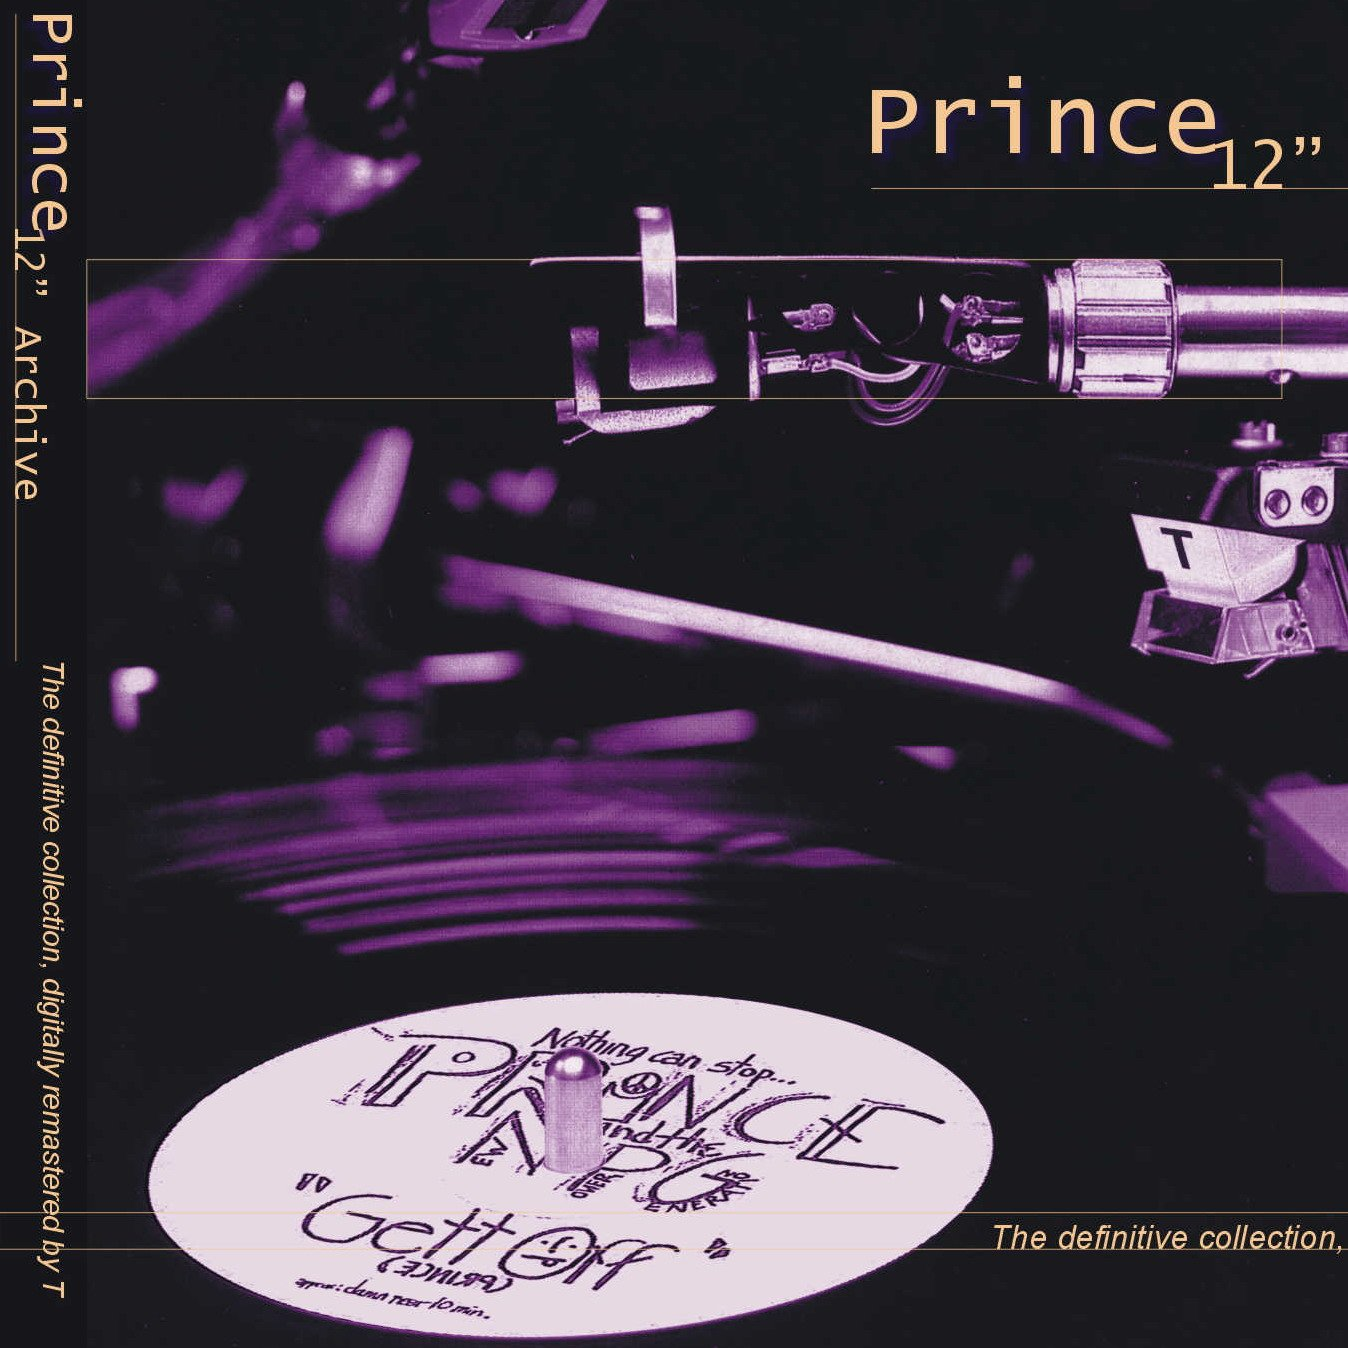 Prince — Soft And Wet (Disco Mix) — Listen and discover music at Last.fm